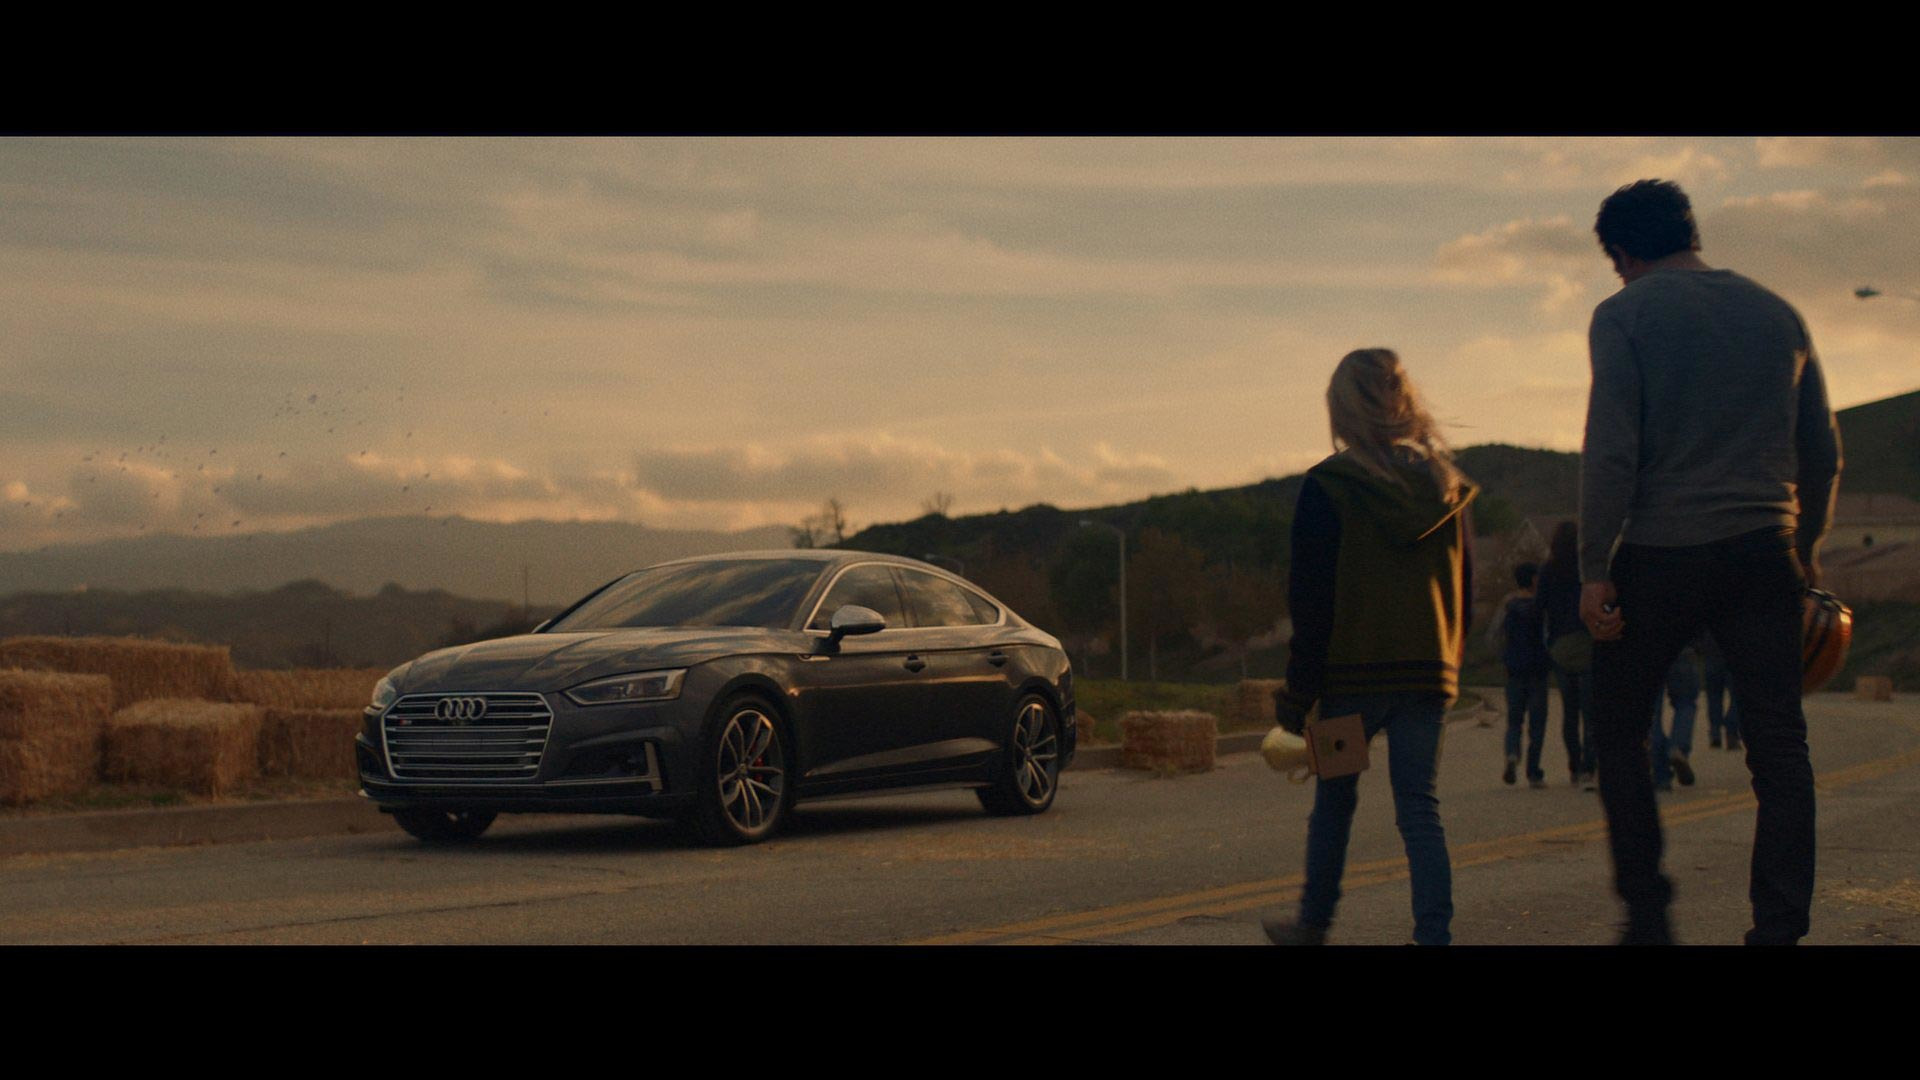 Audi Super Bowl Spot Advertises Equality Over New S Sportback - Audi car commercial